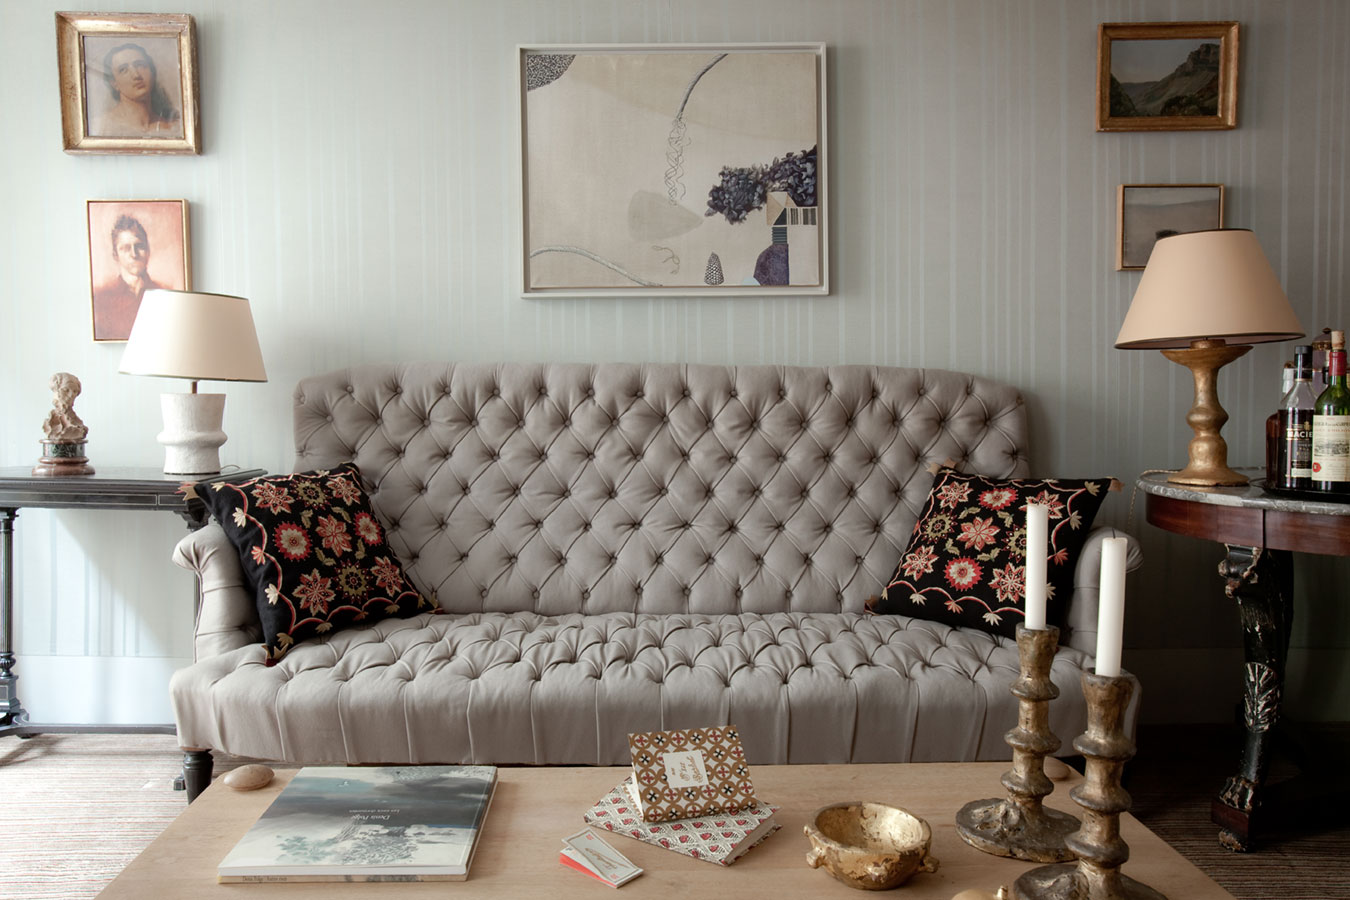 Amazing Classic Style Furniture For Practical Chic Interiors. Nice Broad Chic Couch  With Printed Cushions In